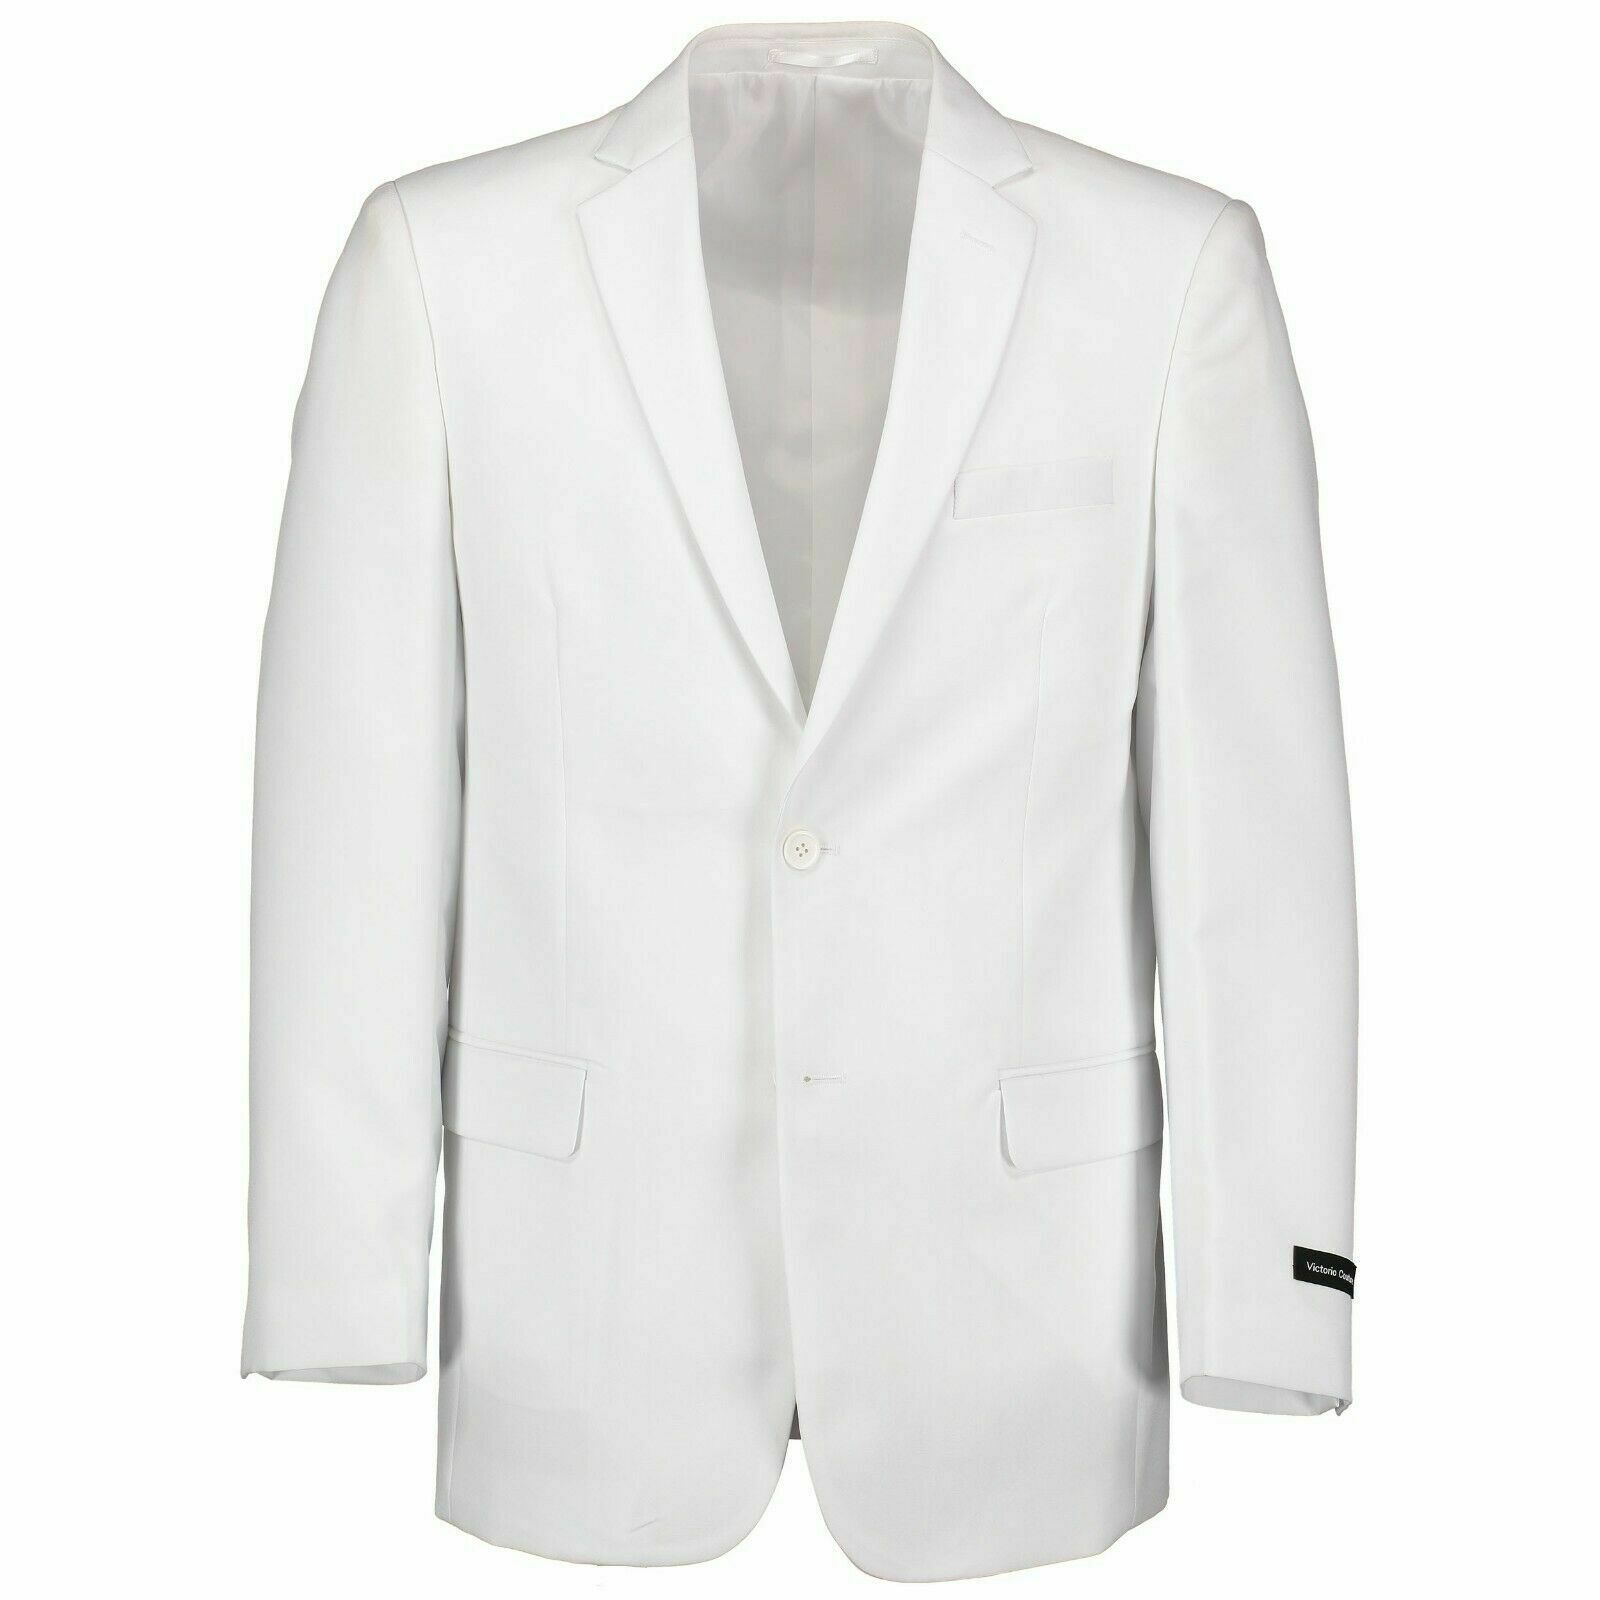 Victorio Couture Men's White 2 Button Classic Fit Poplin Polyester Suit